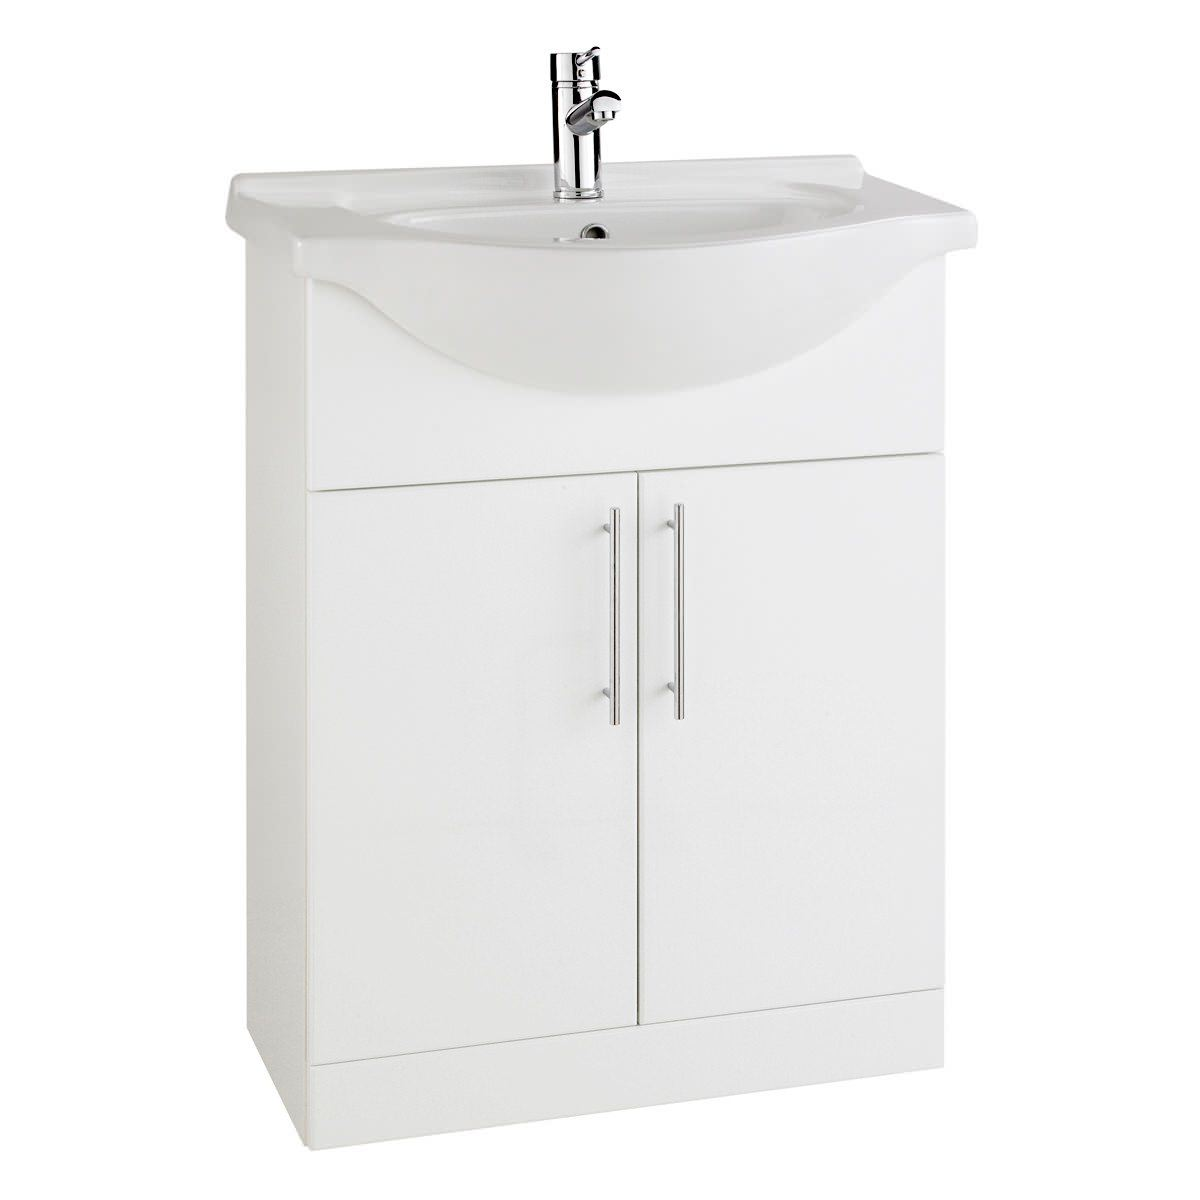 Aqva New York White Vanity Unit And Basin 650mm RWF65UNIT